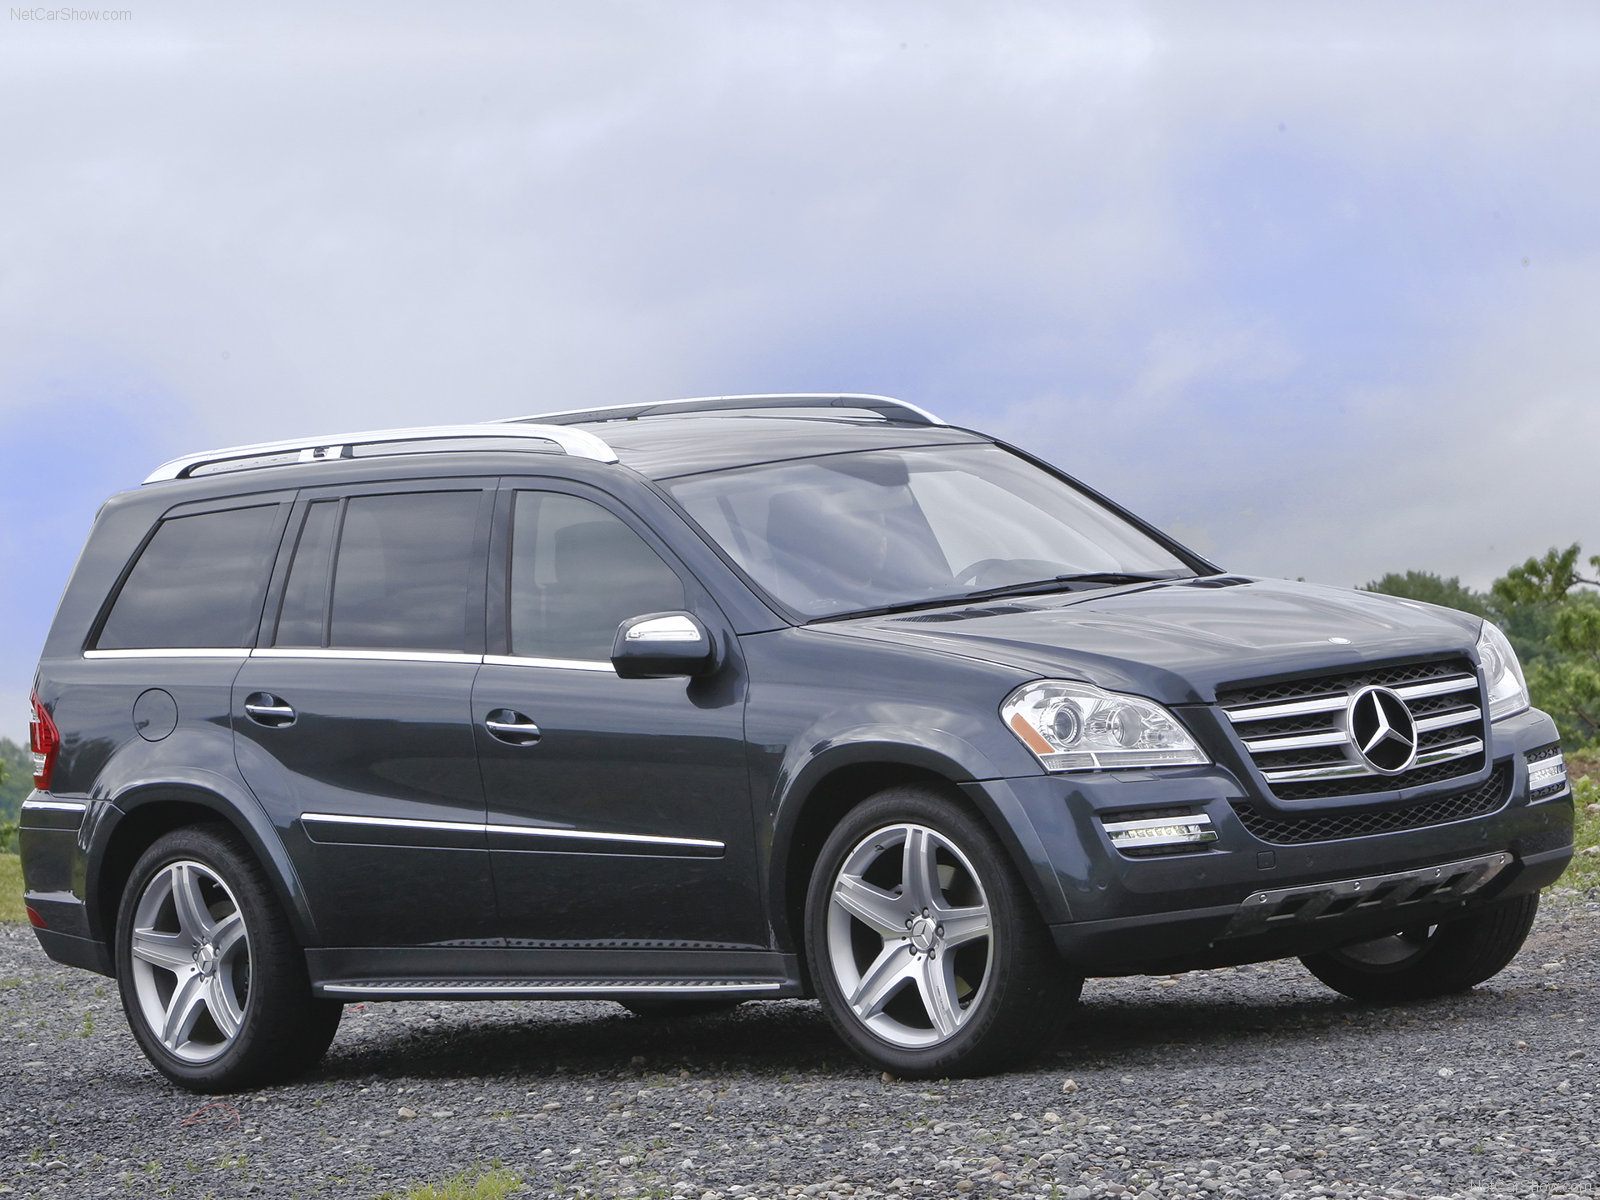 3dtuning of mercedes gl class suv 2010 for Mercedes benz gl class diesel